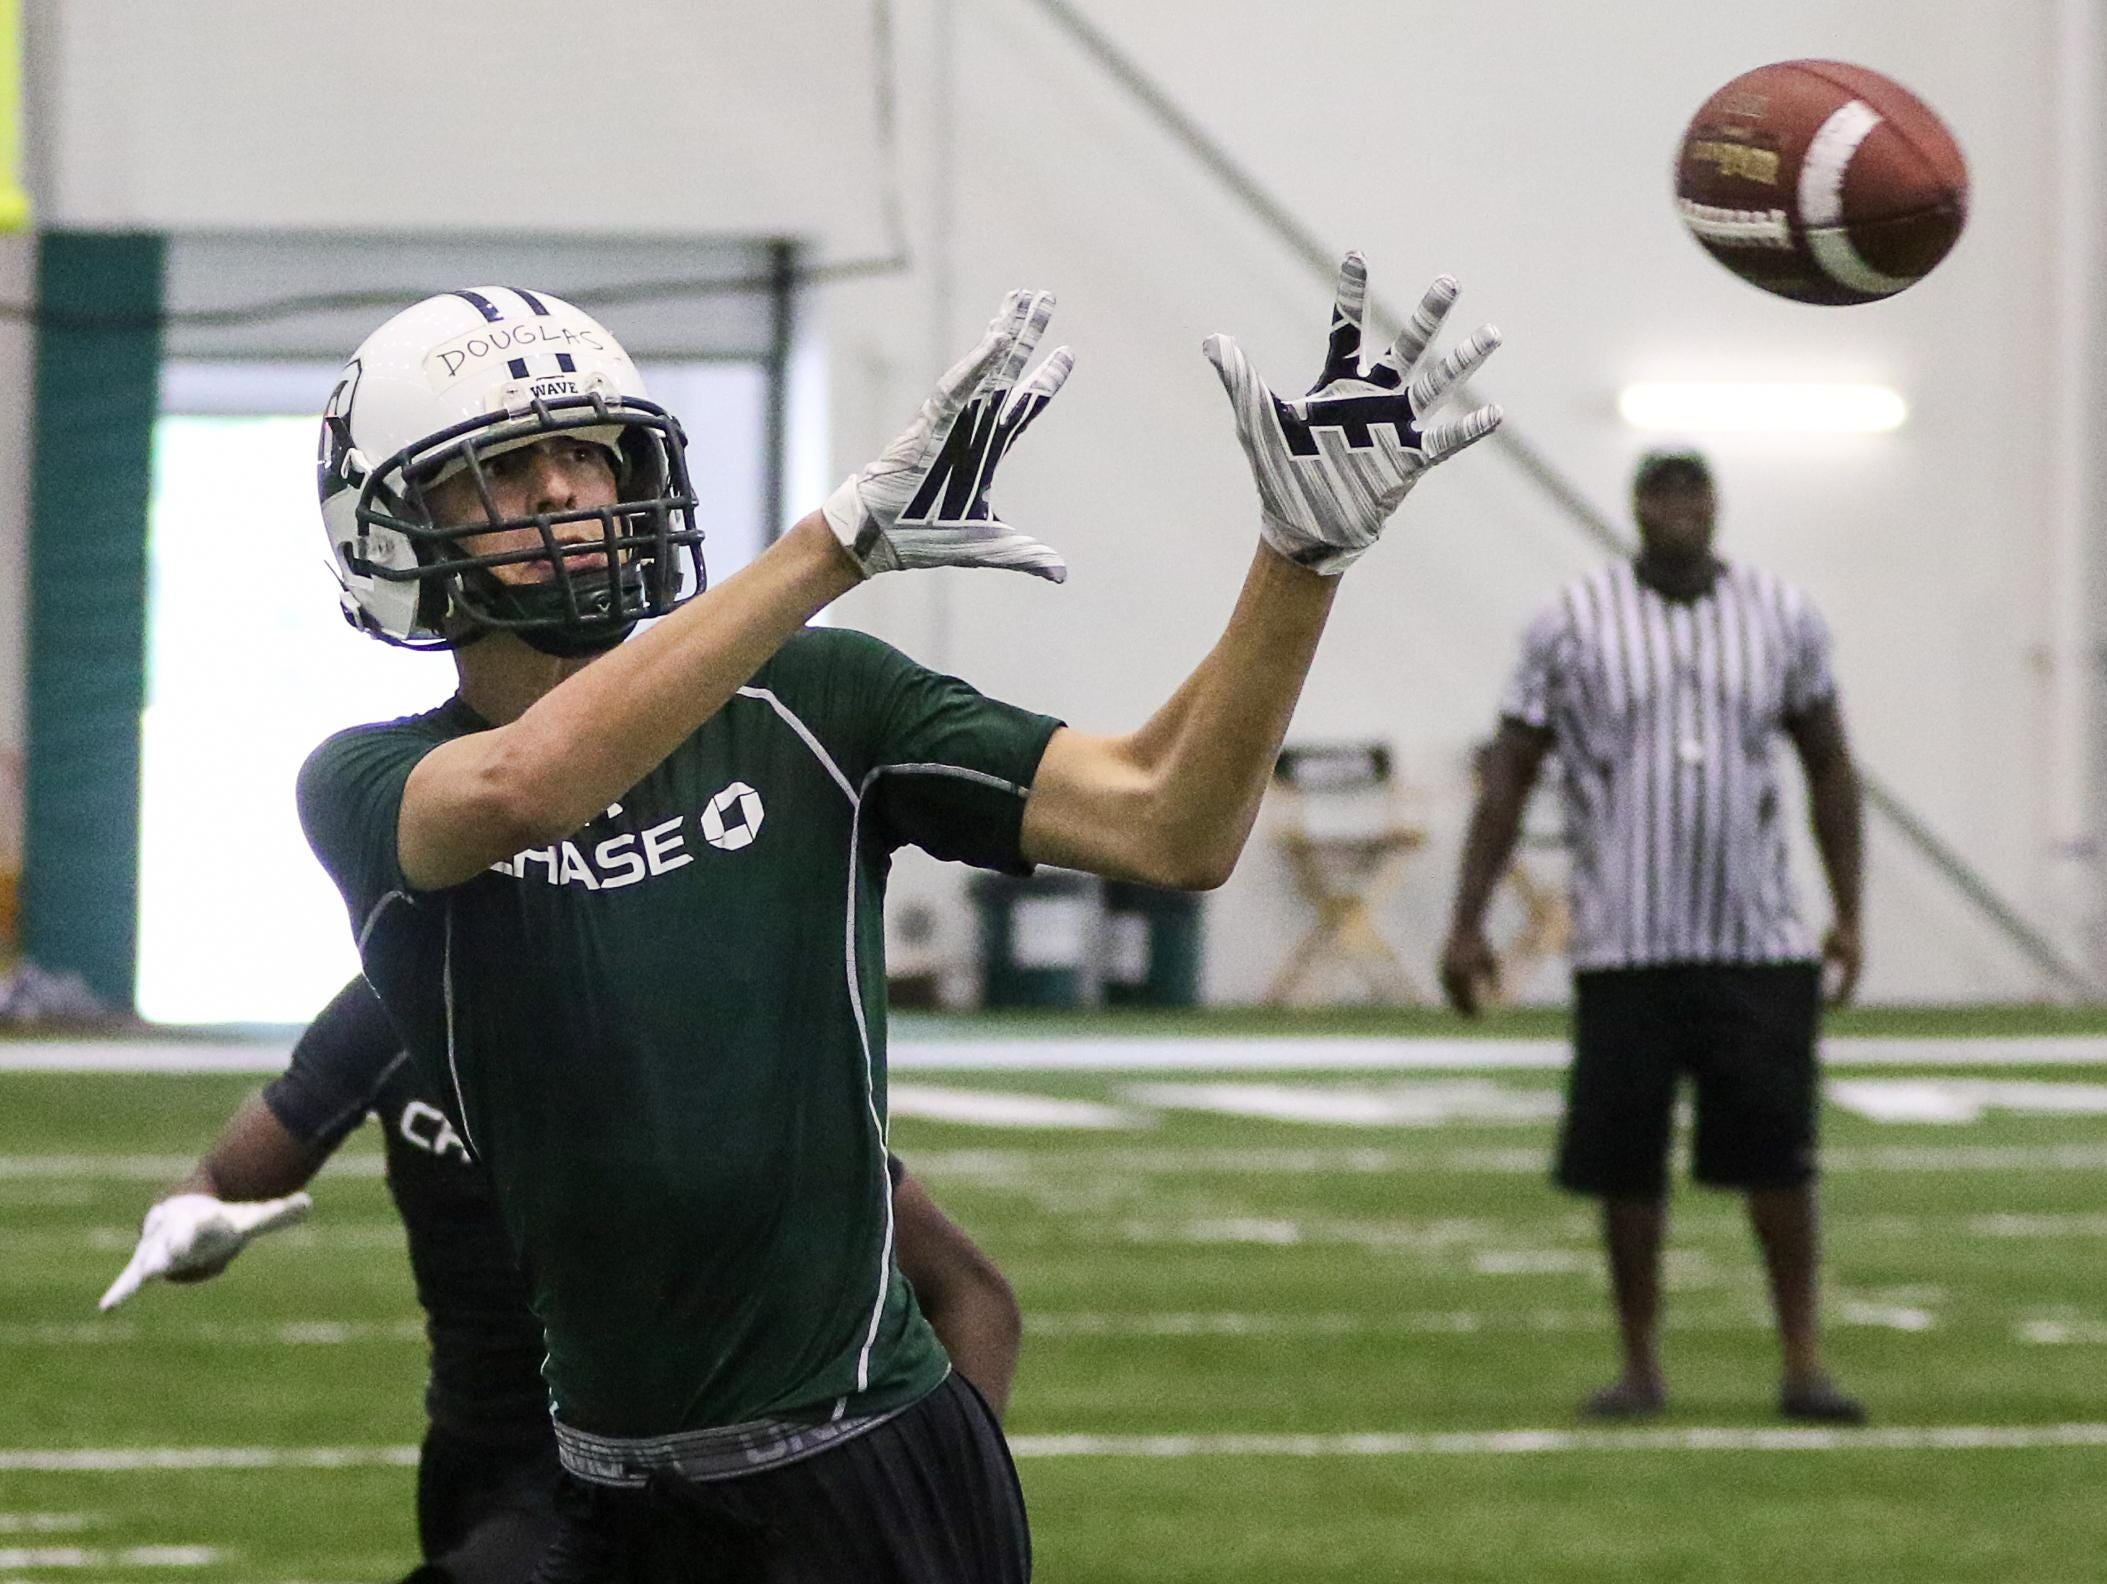 Delbarton's Matt Douglas catches a pass in the New York Jets 7-On-7 Tournament at the Atlantic Health Jets Training Center in Florham Park on June 12, 2015.